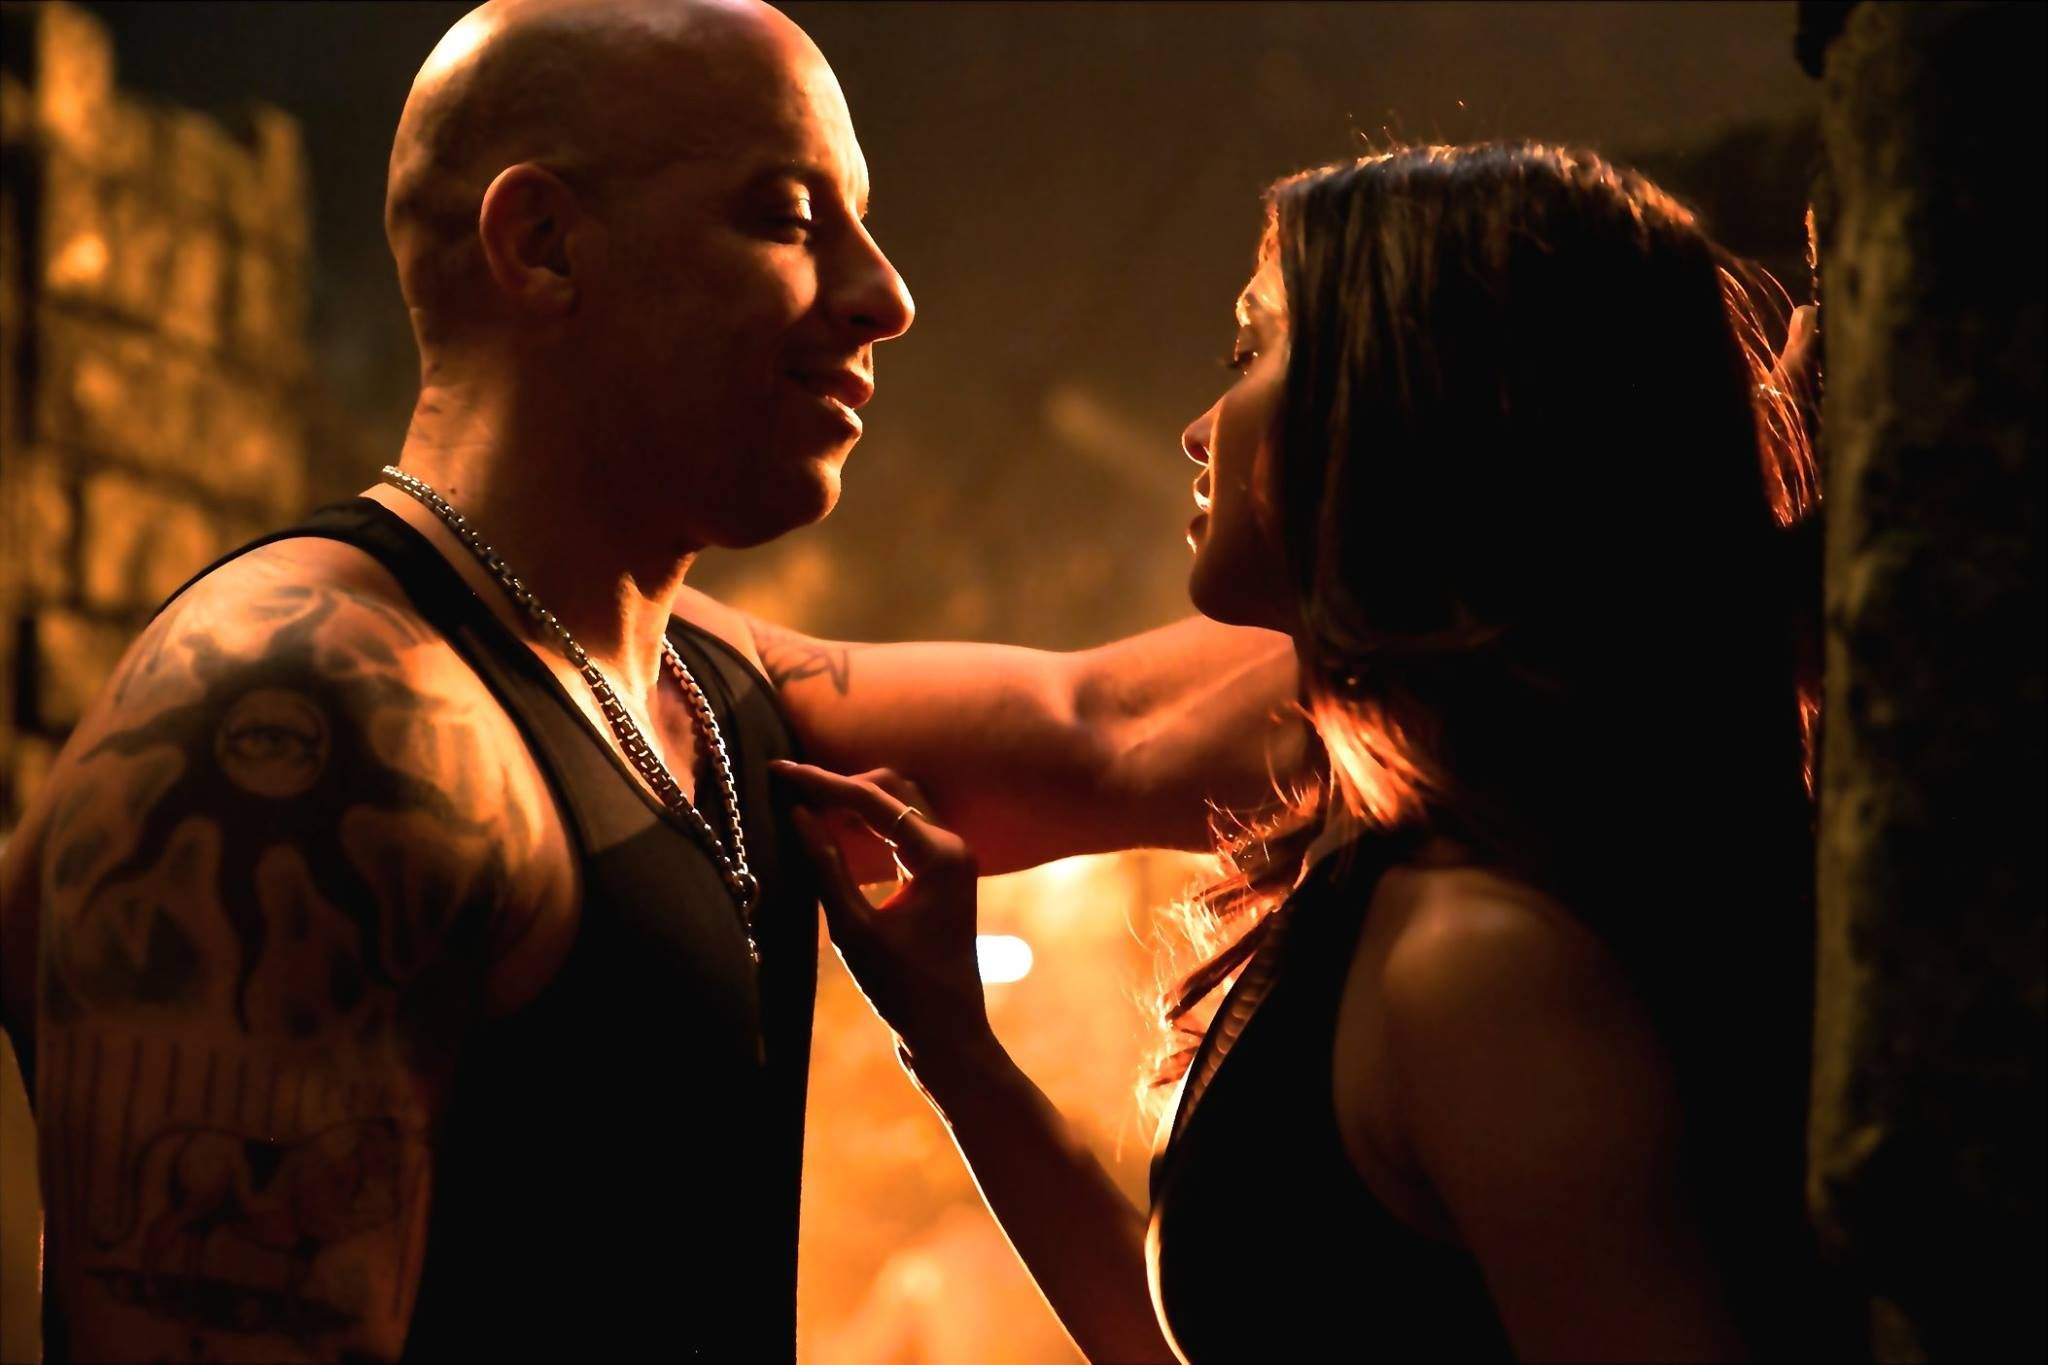 Paramount Pictures to release xXx: The Return of Xander Cage